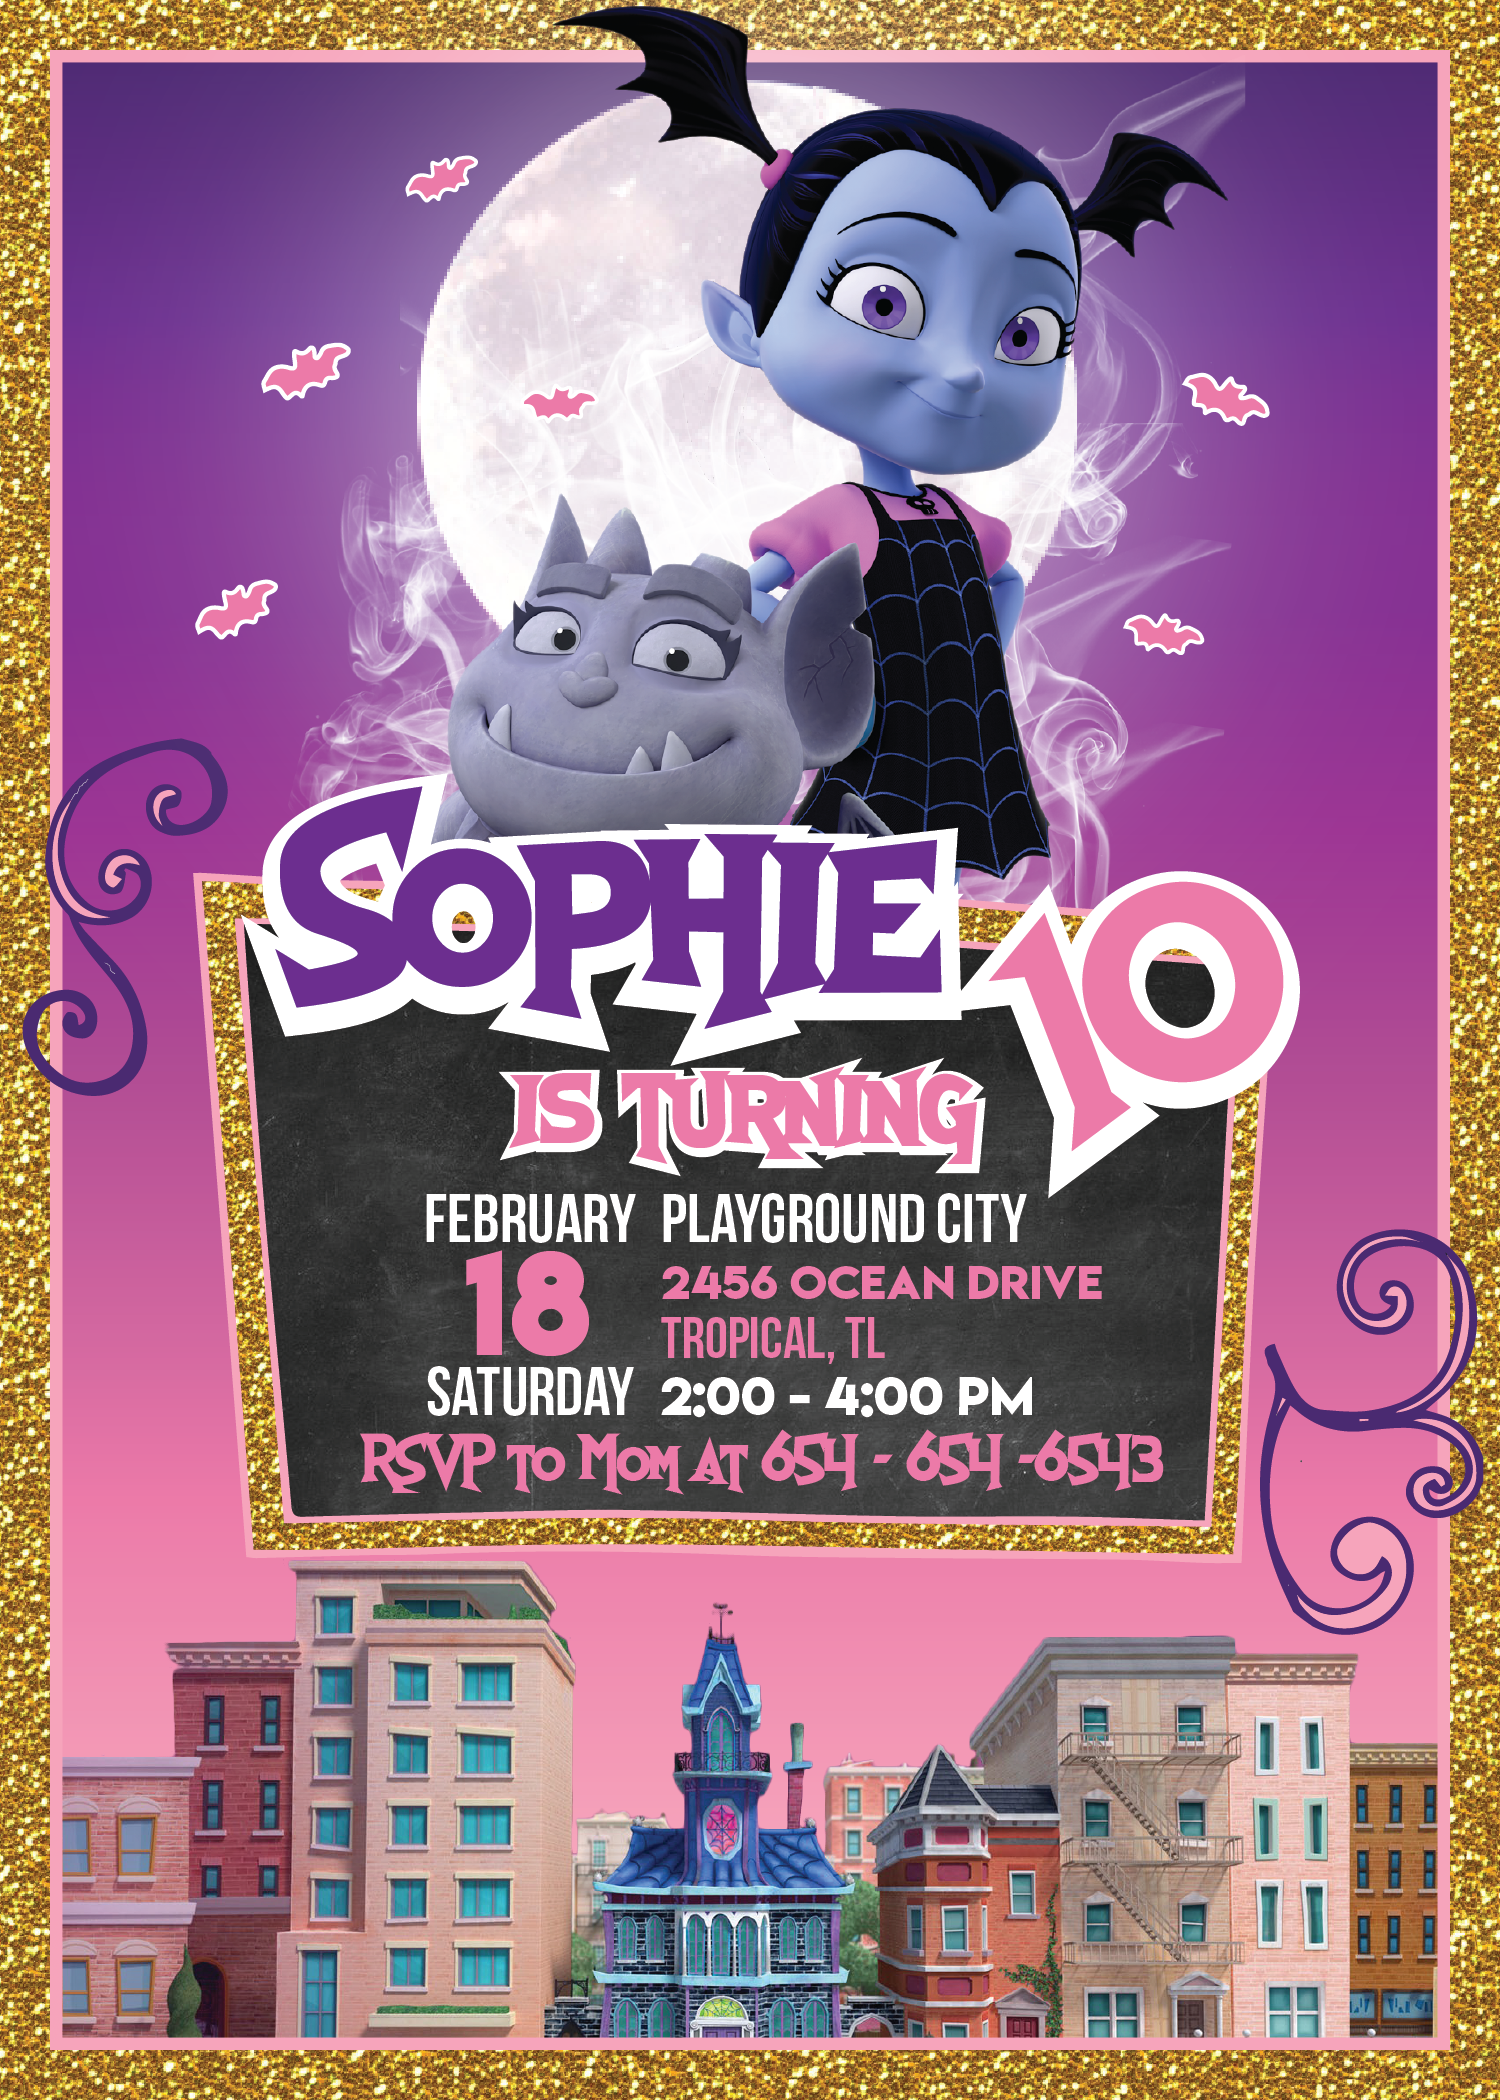 Vampirina Birthday Party | Vampirina Invitation Printable | Vampirina Party  Supplies | Vampirina Party Ideas For